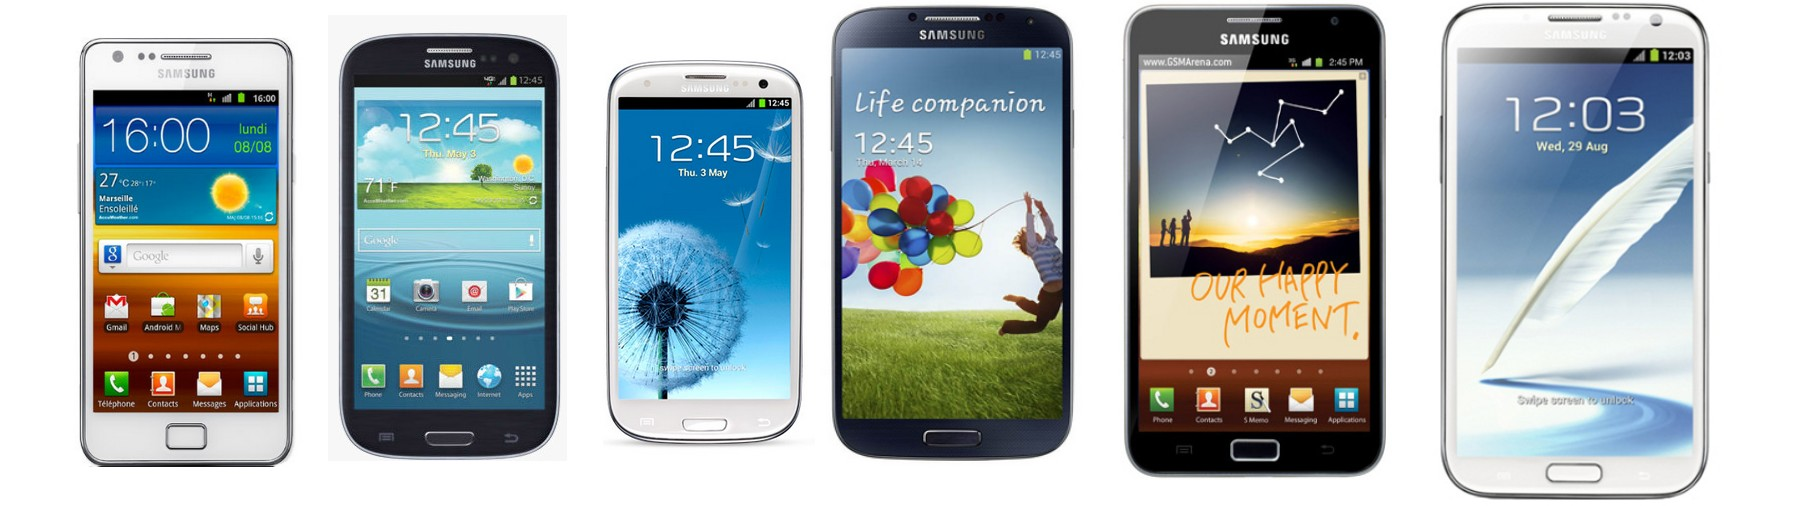 réparation samsung galaxy s2, s3, s3 4g, s3 mini, s4, note, note 2